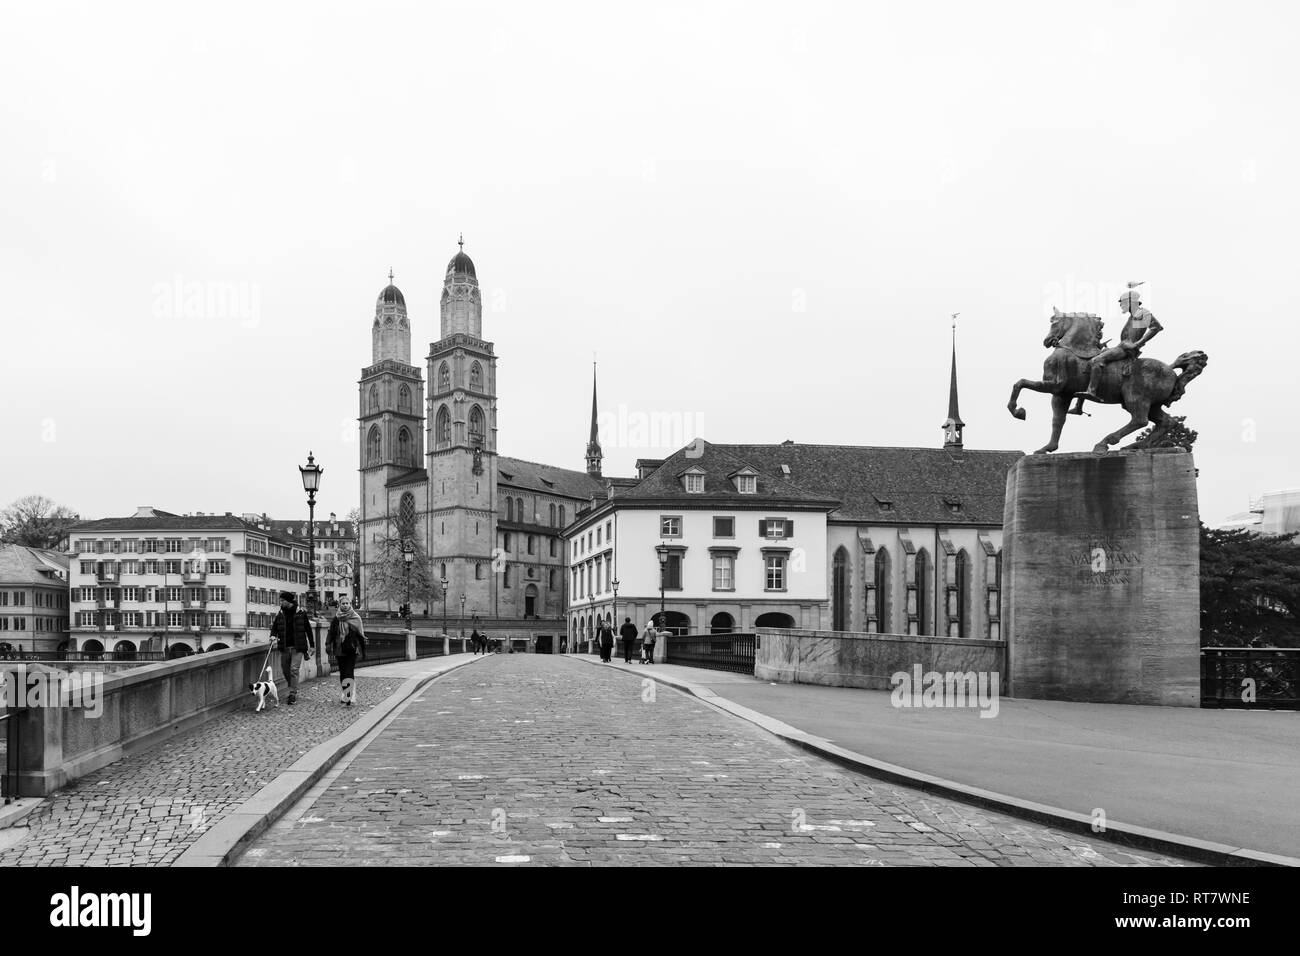 Switzerland, Zurich. Black and white picture of the Grossmuenster church and the Muenster bridge in the old town during a foggy autumn day. Picture ta - Stock Image